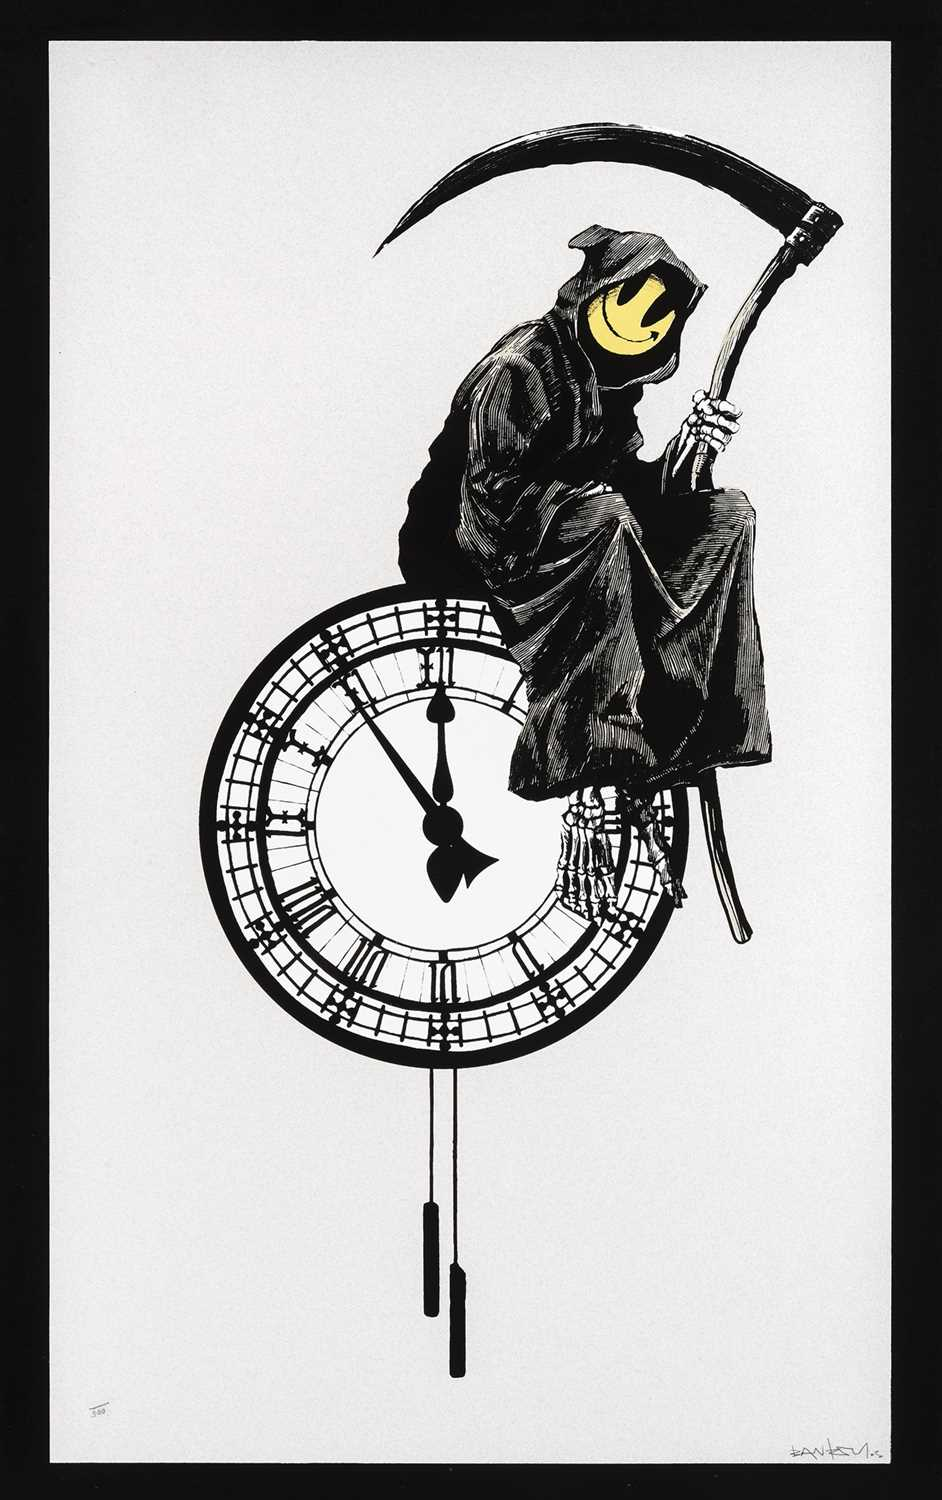 Lot 81-Banksy (British 1974-), 'Grin Reaper', 2005 (Signed)